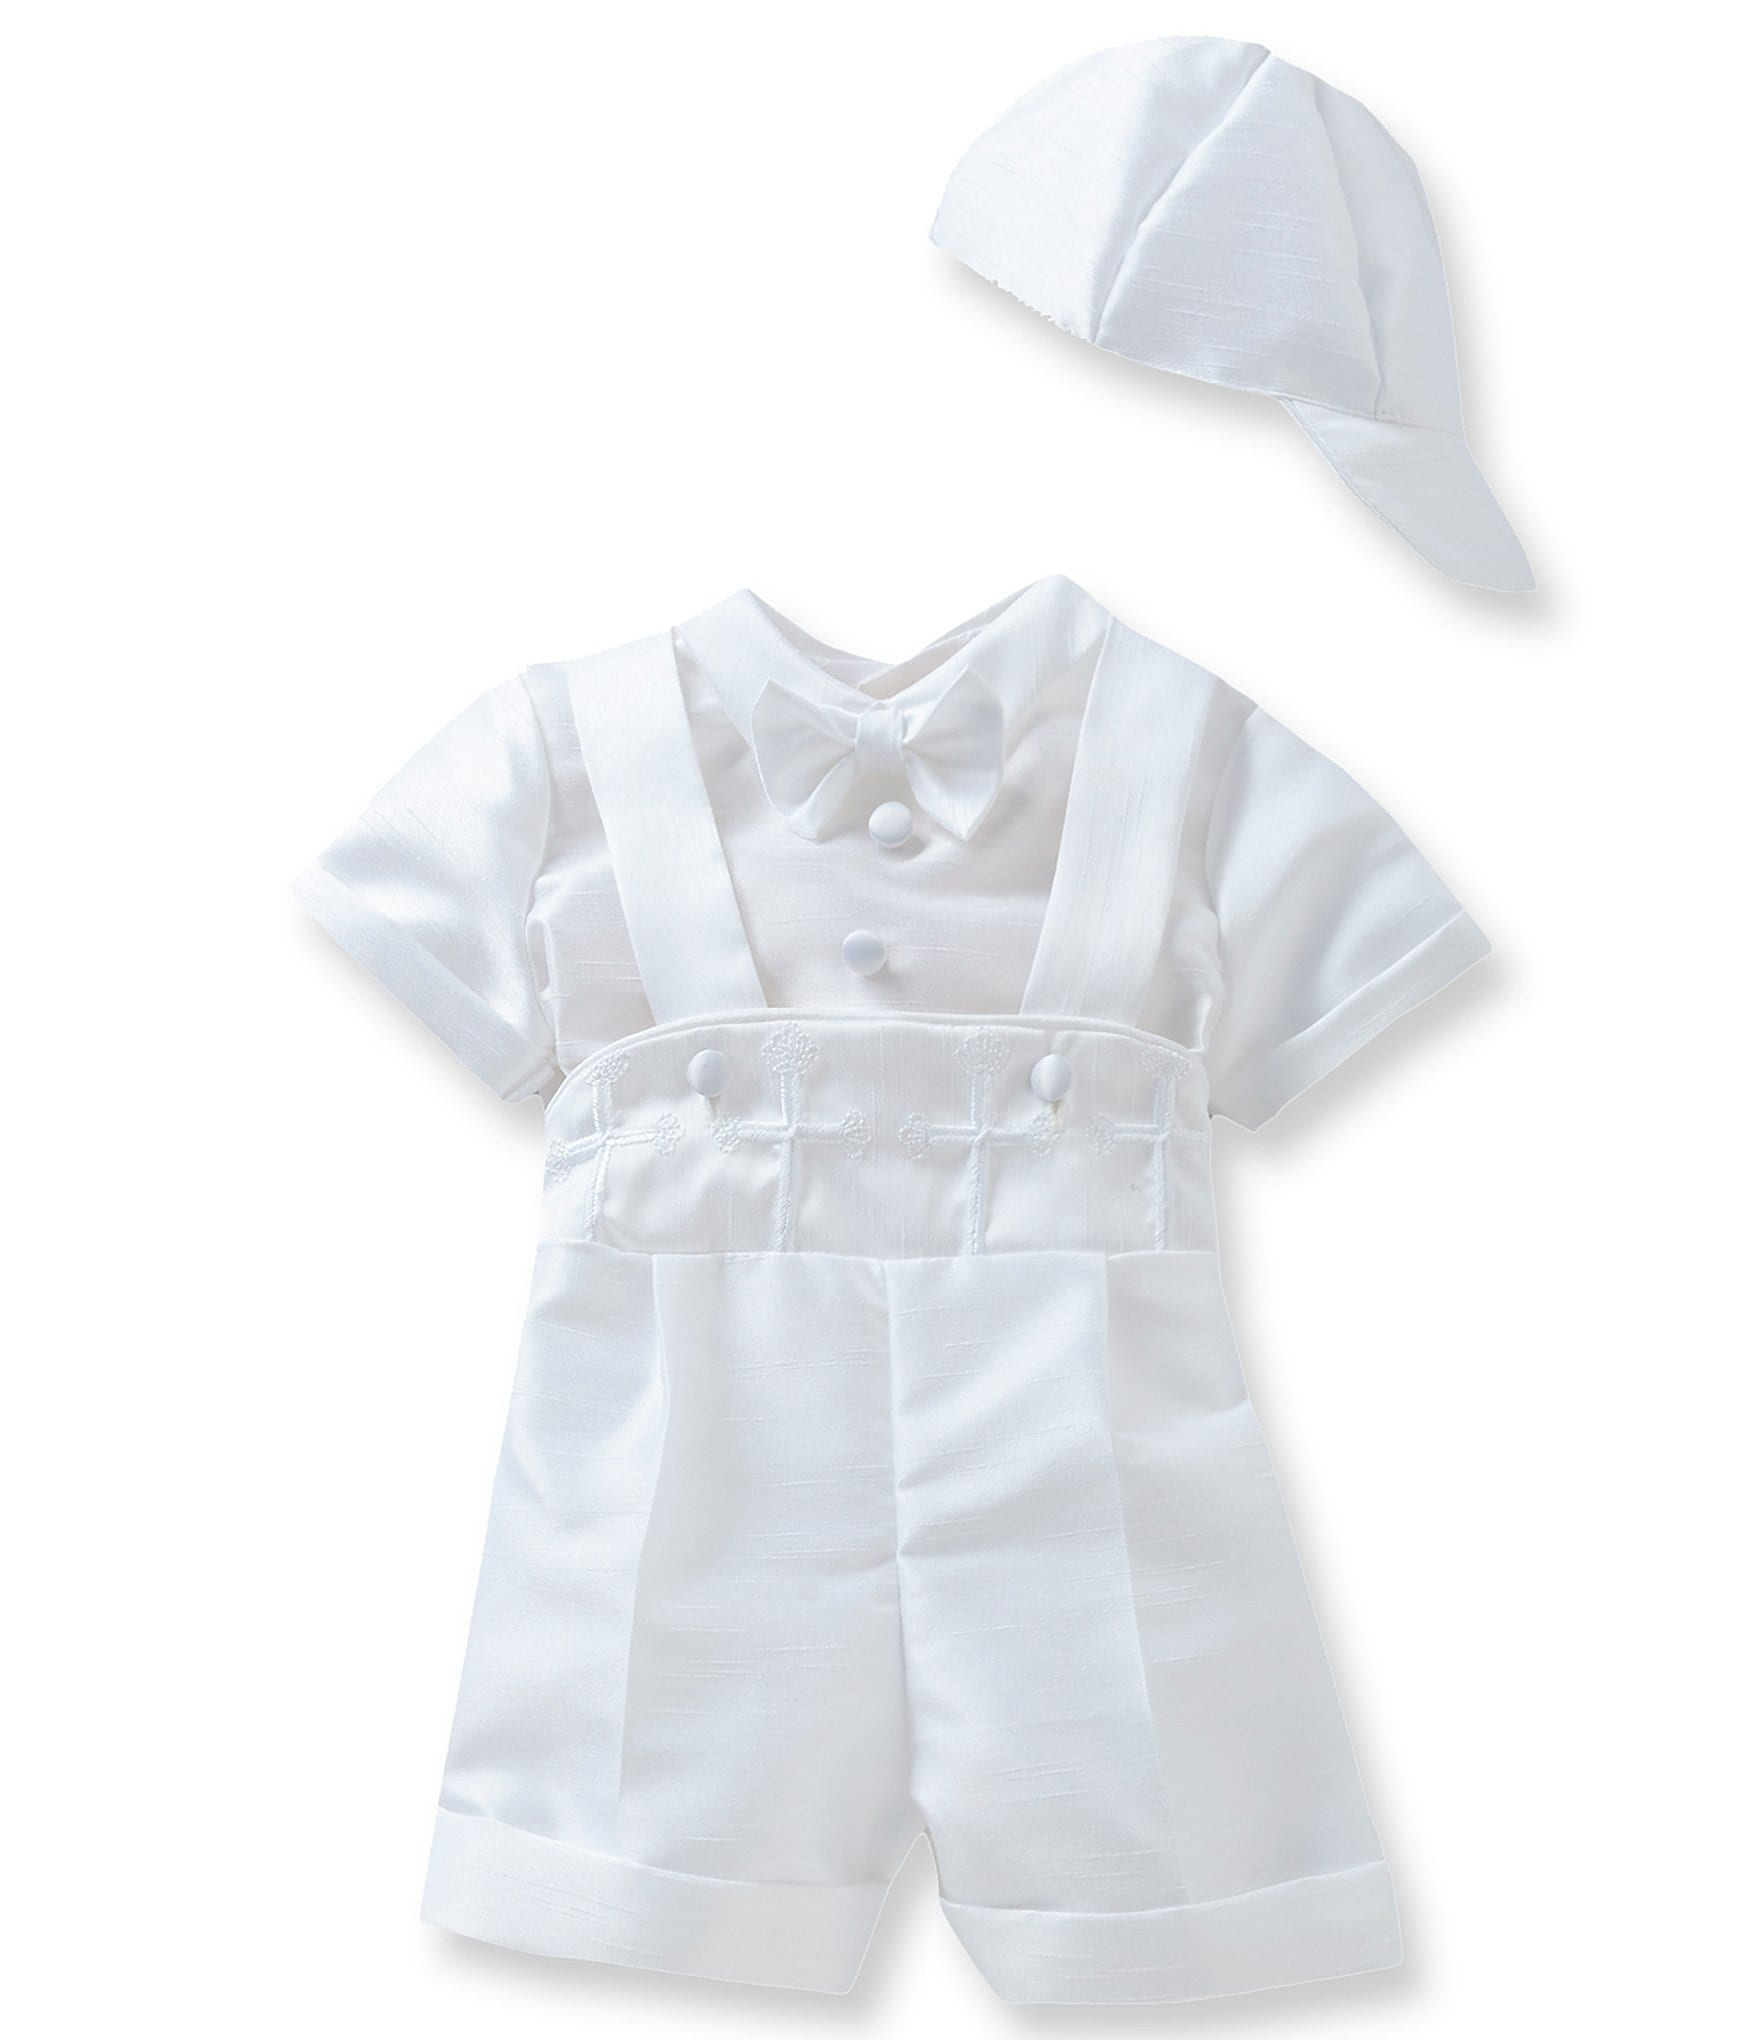 4302a86c00cd Edgehill Collection Baby Boys Clothing